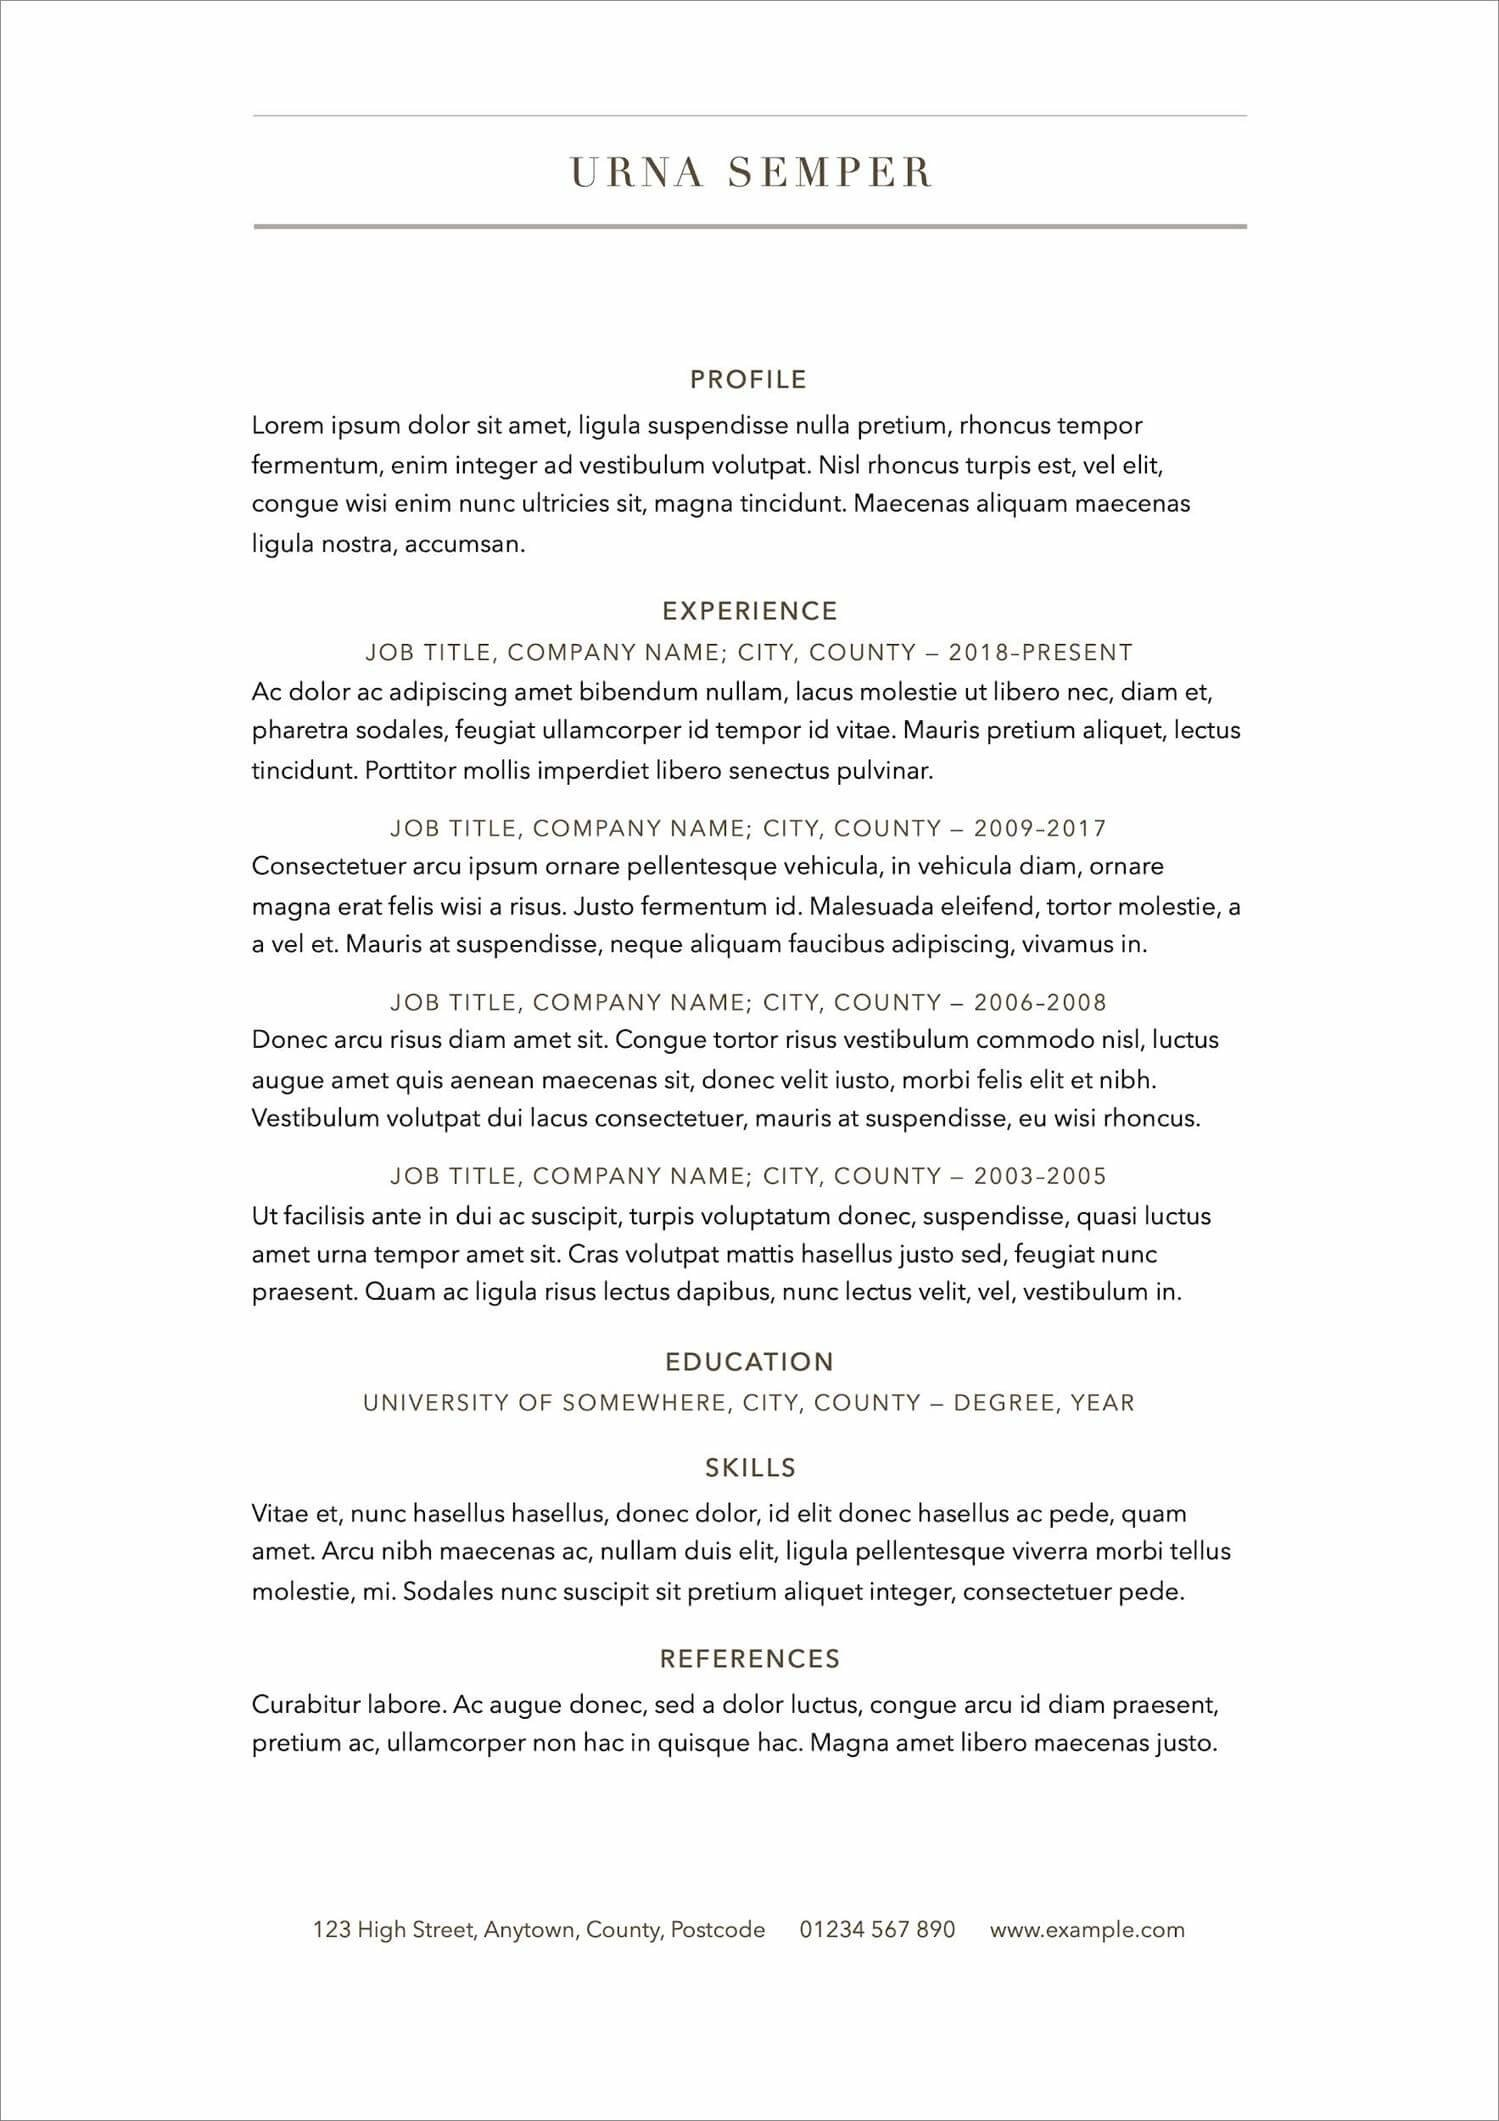 free resume templates for to now examples new float rn objective medical receptionist Resume Free Resume Examples 2018